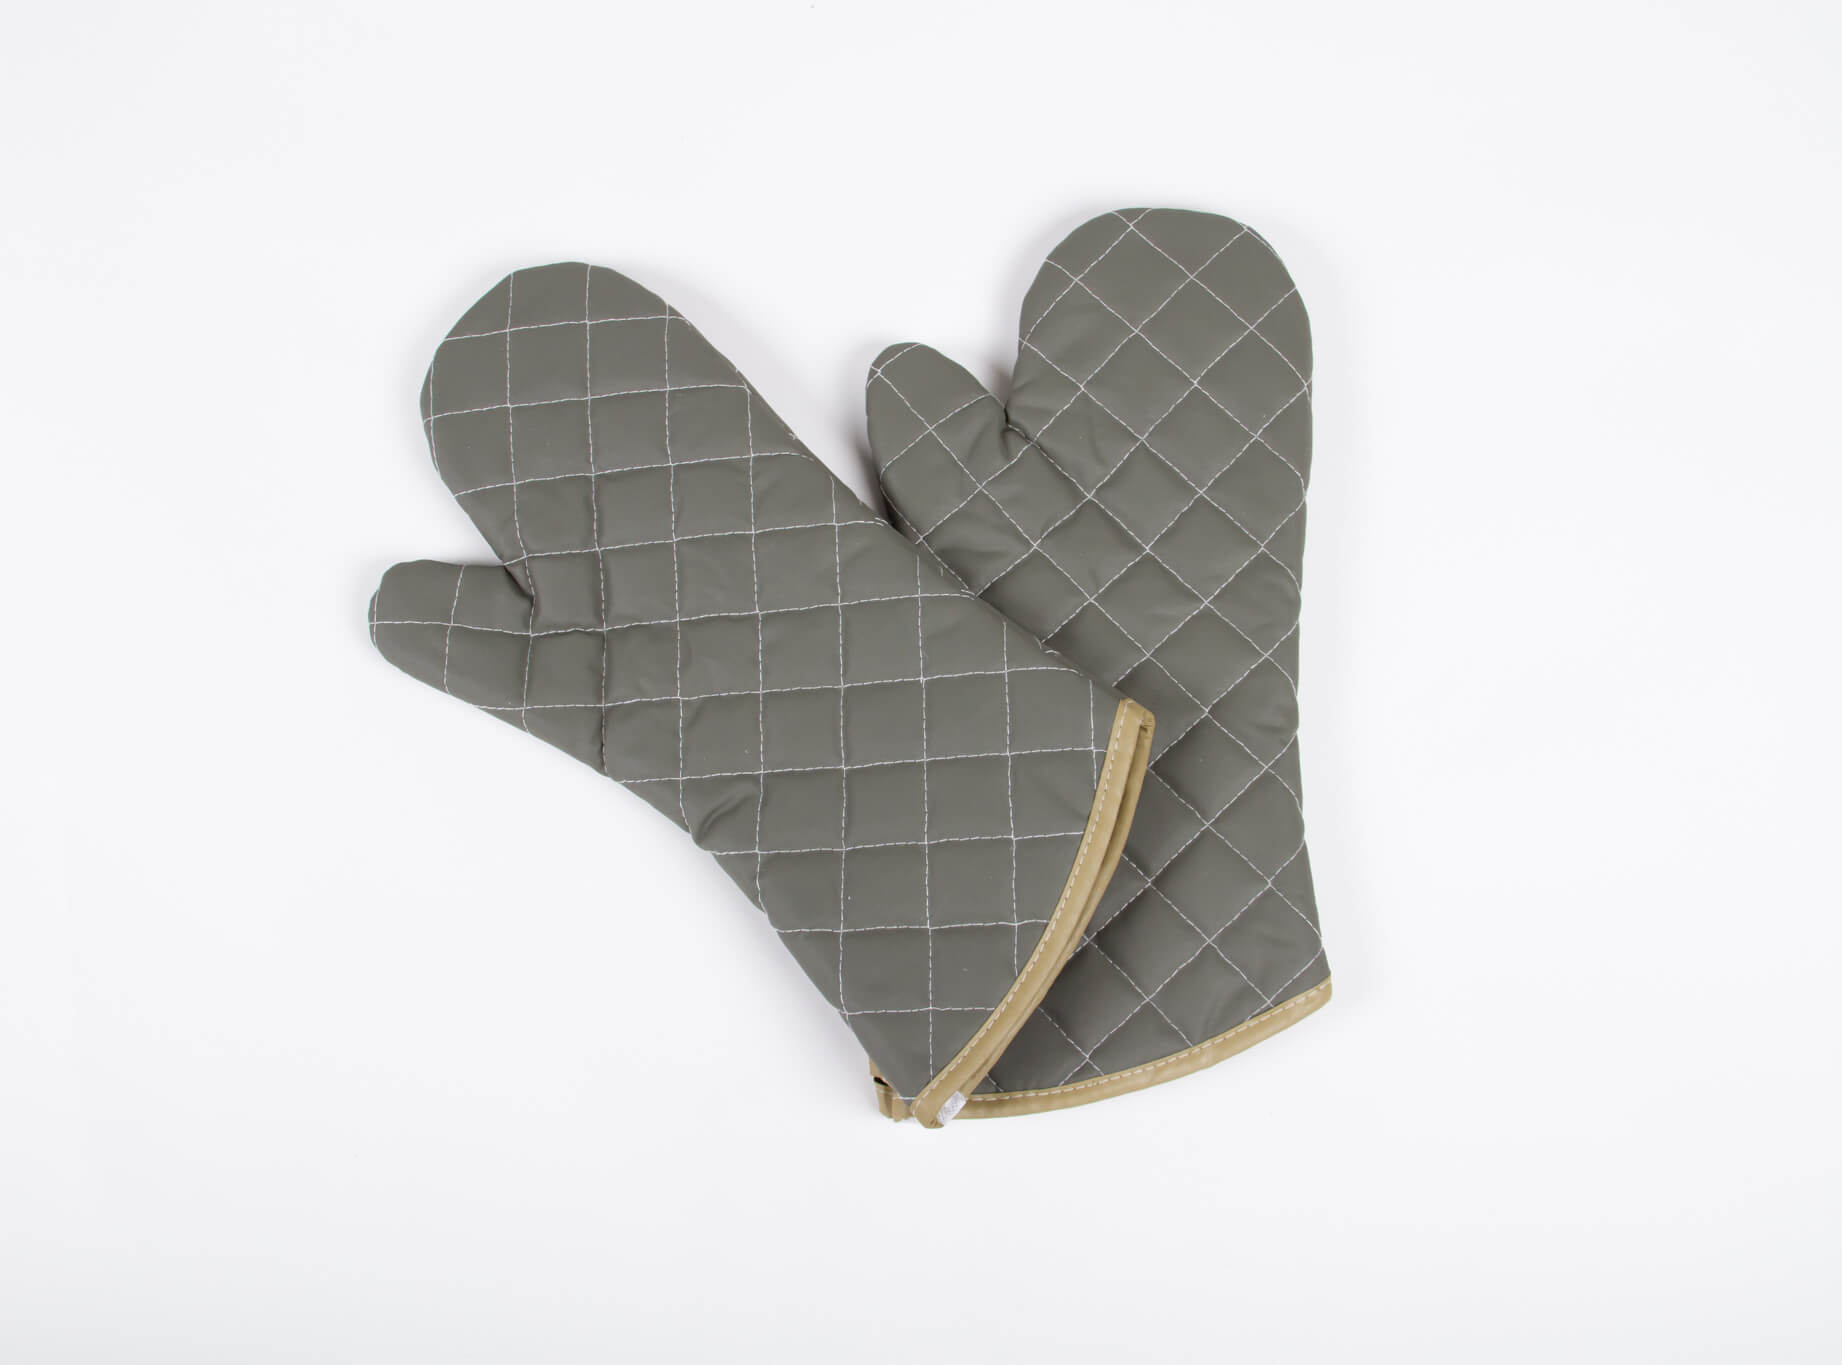 Creeds Oven Mitts